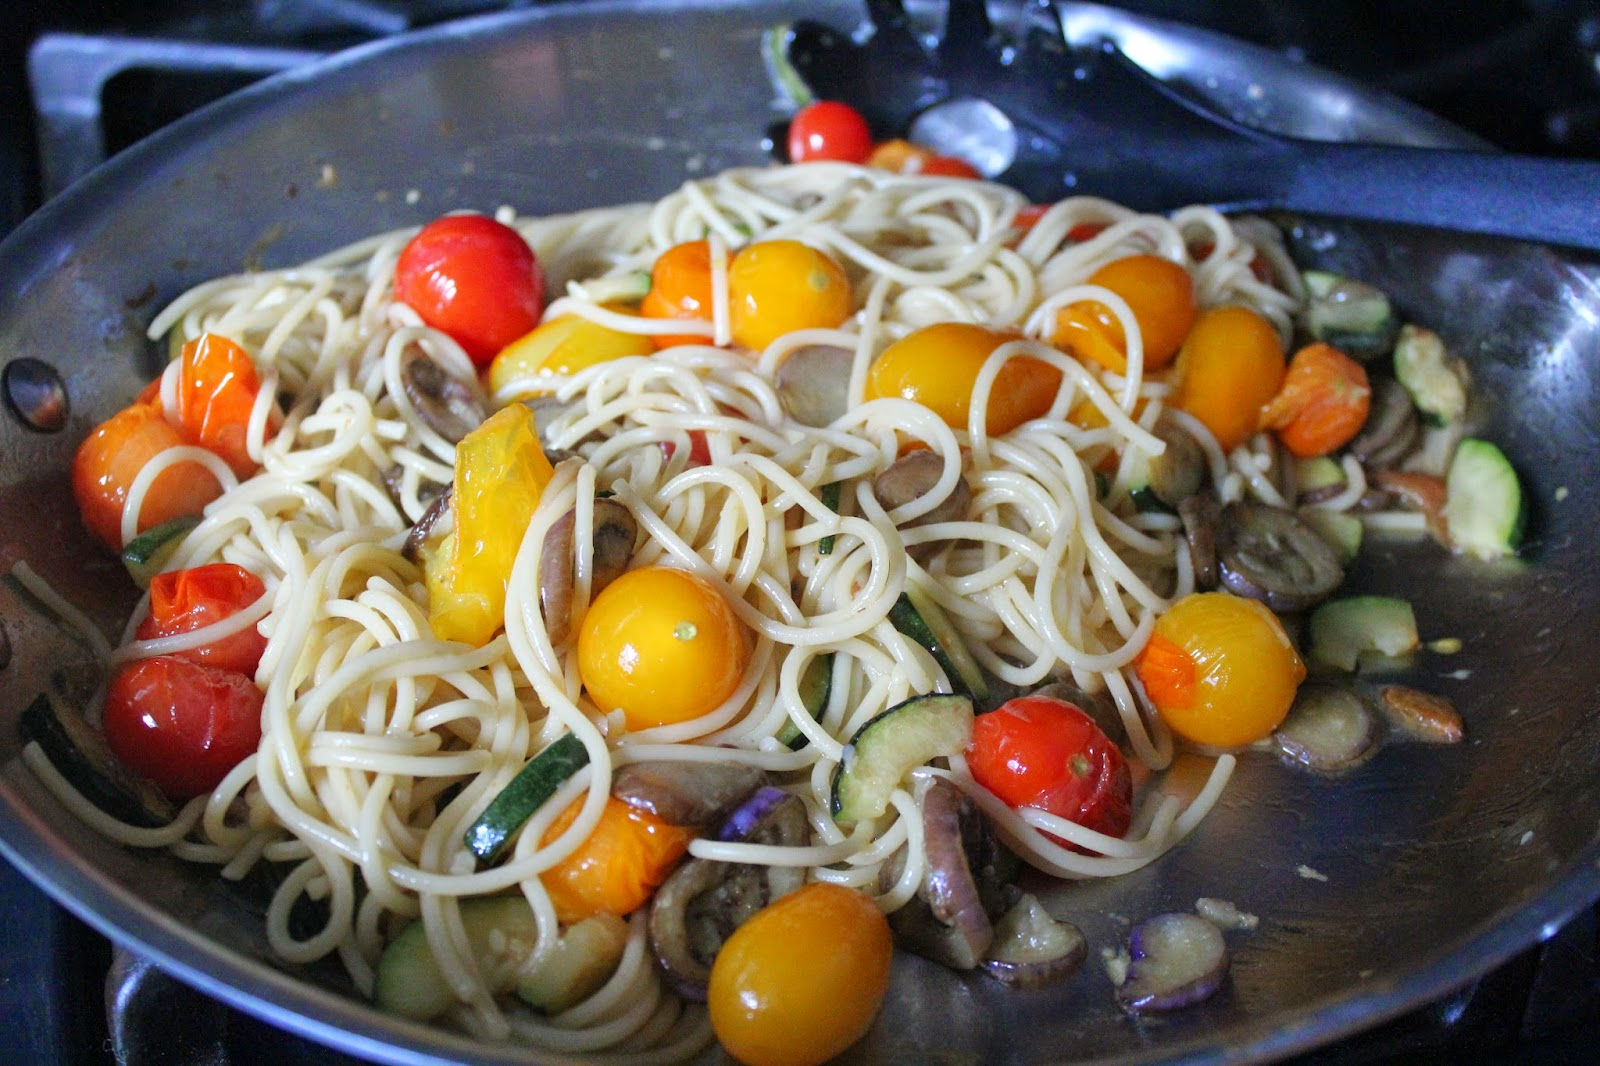 Pasta with zucchini, fairytale eggplant, and tomatoes